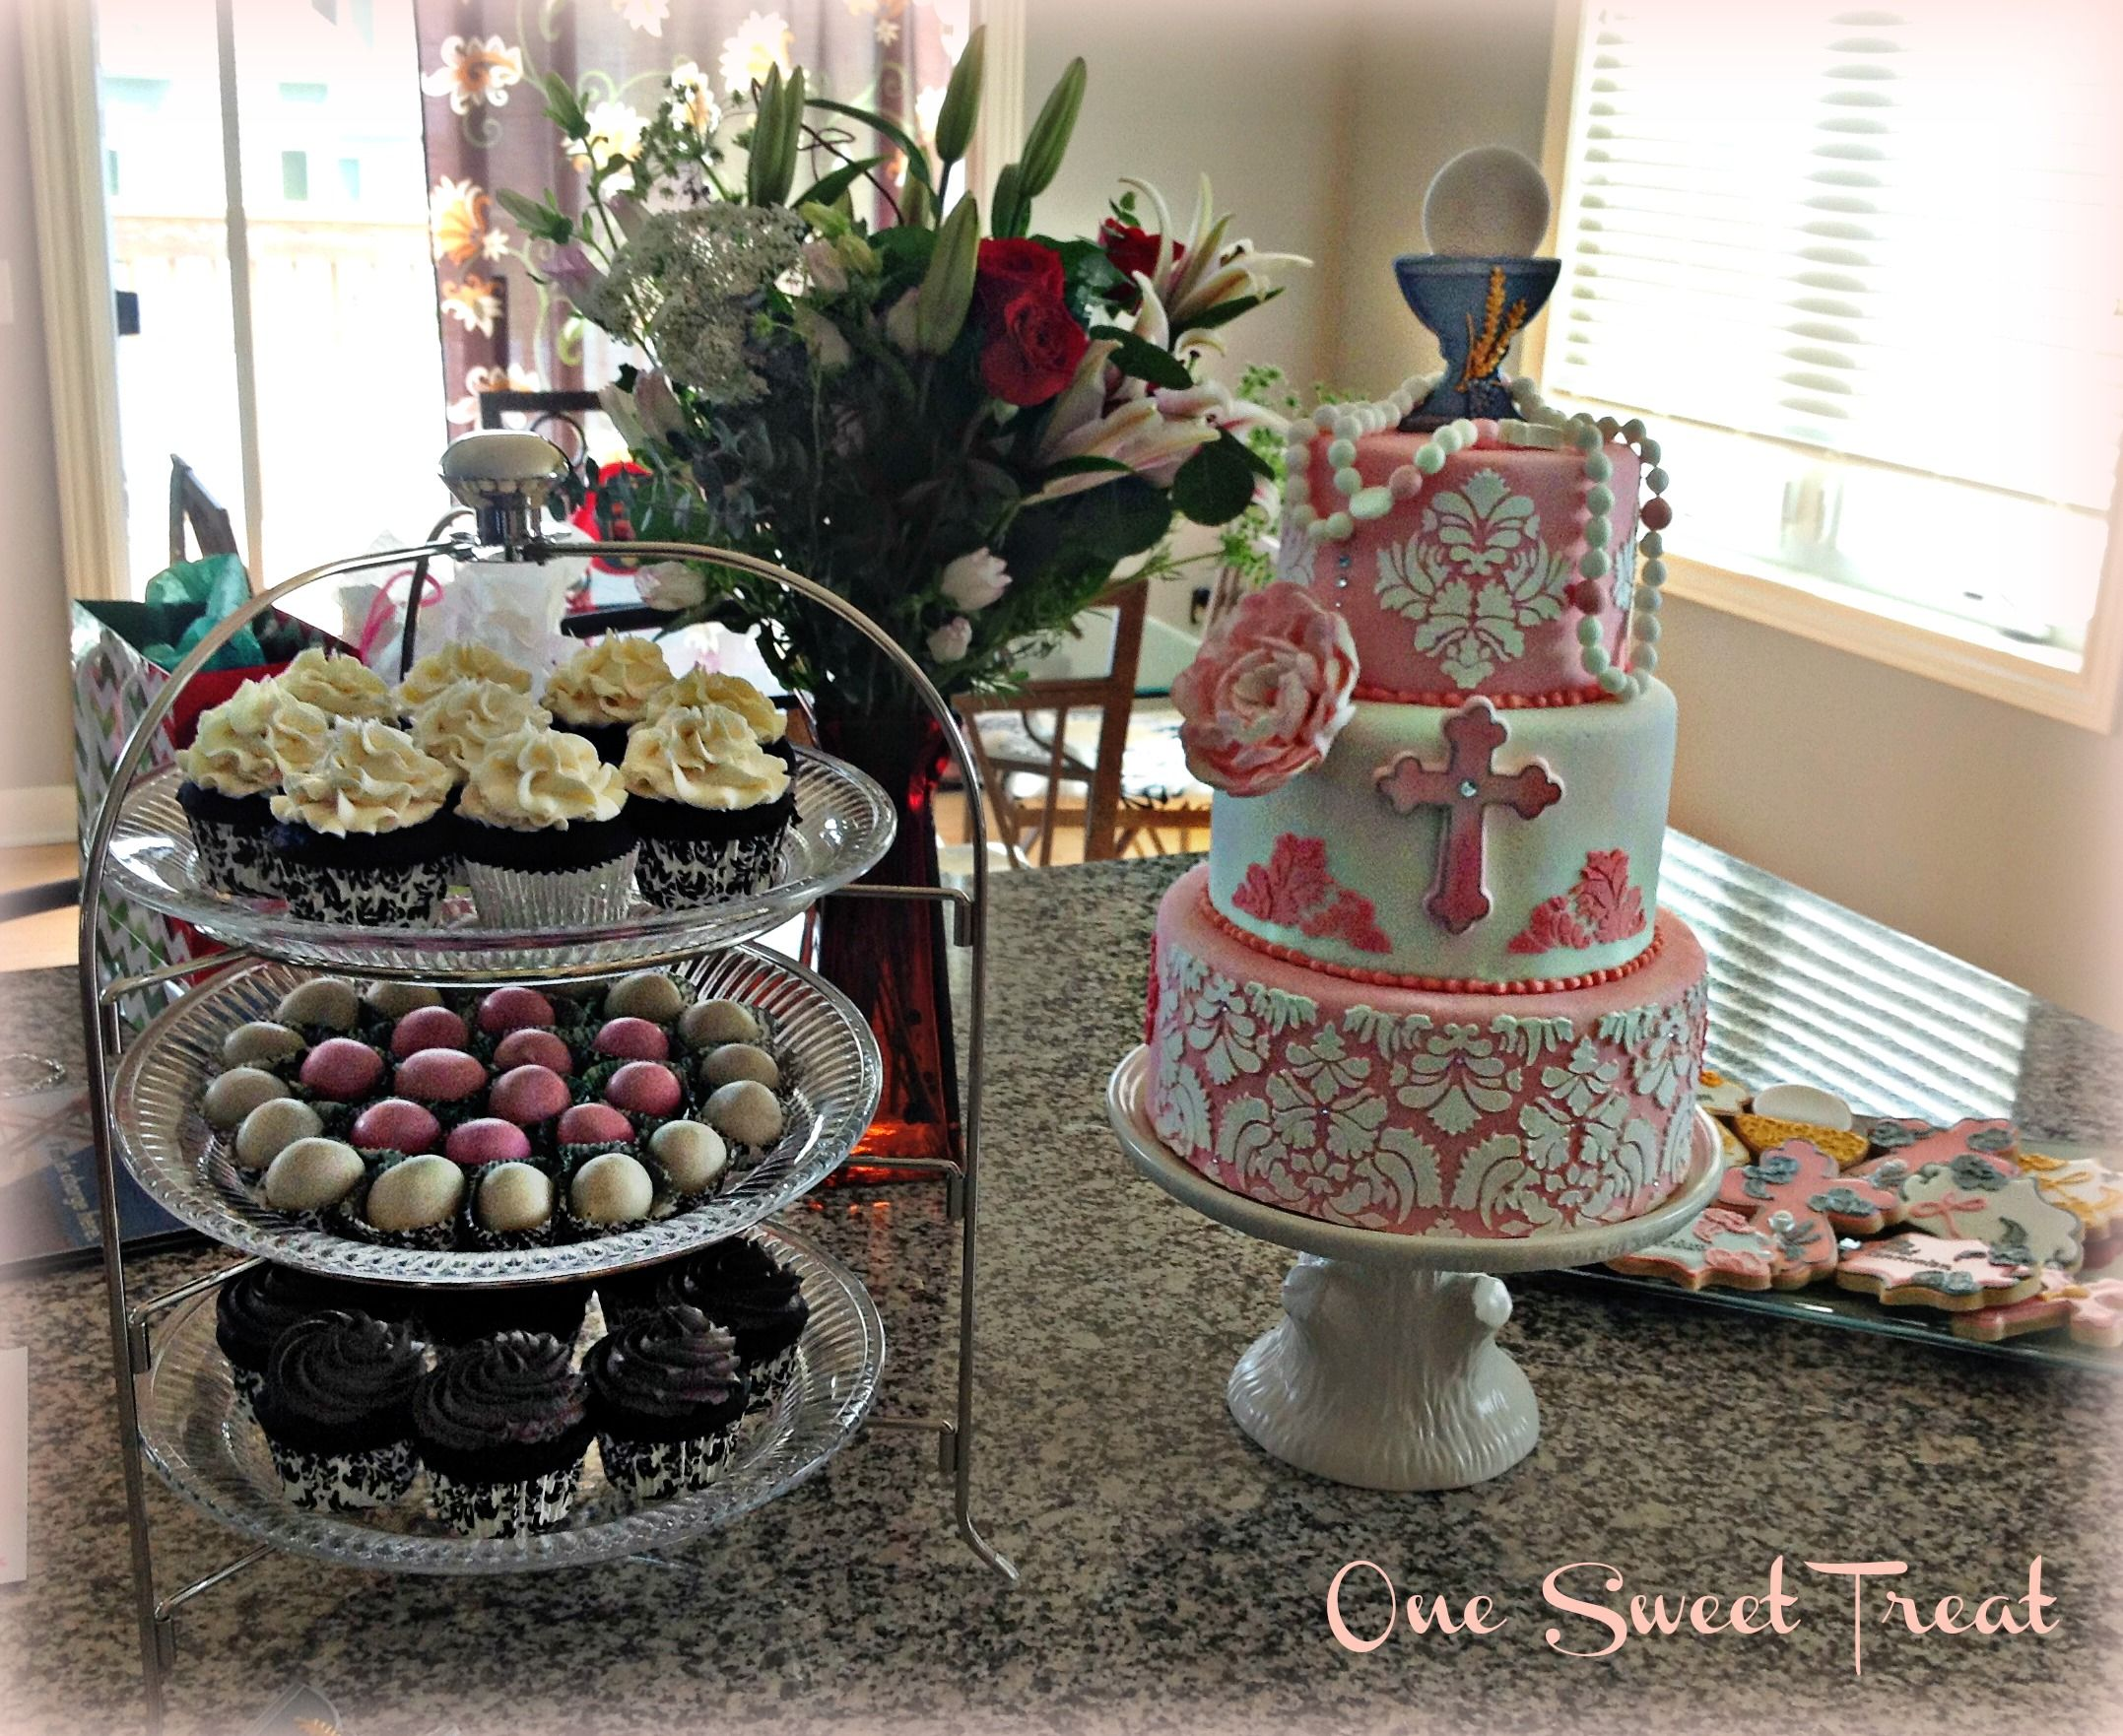 First Communion Cake and Cupcakes for my daughter Lillie.